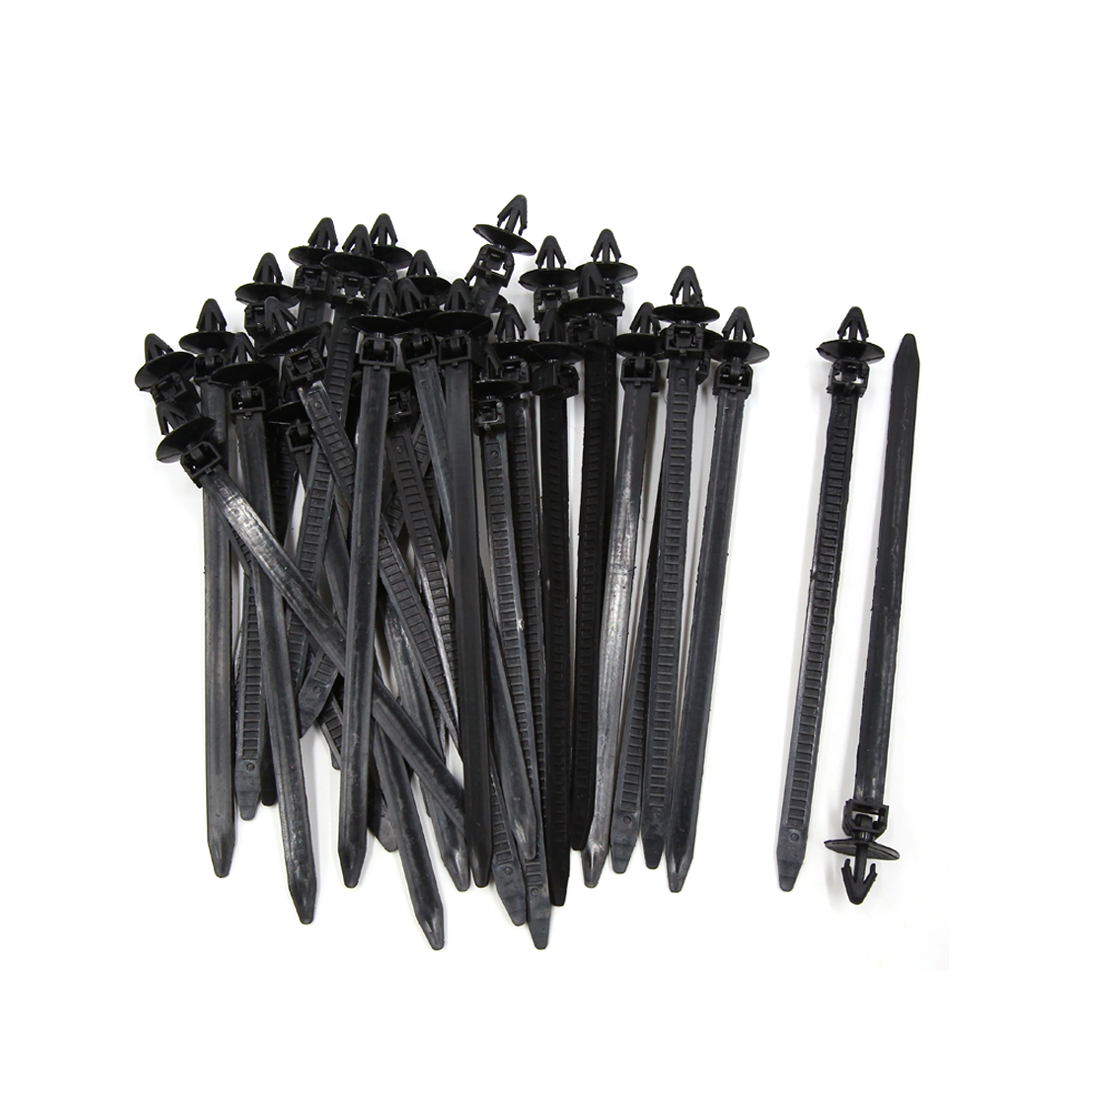 30Pcs 8mm x 175mm Plastic Push Mount Loop Cable Ties Zip Wire Fastener Black